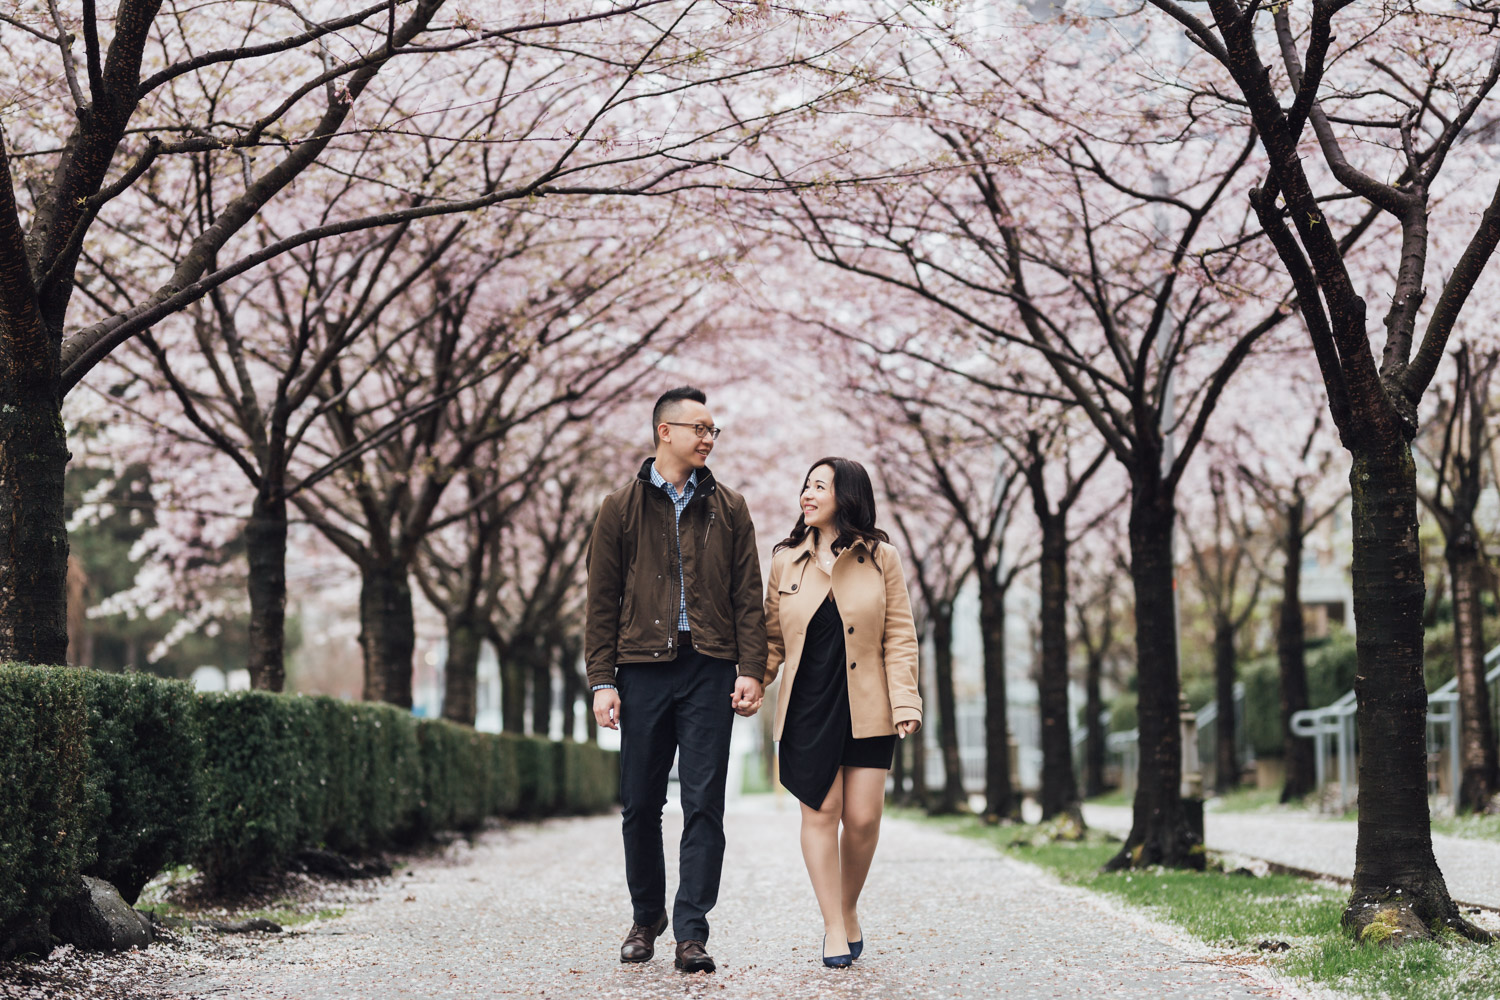 vancouver cherry blossom engagement photography